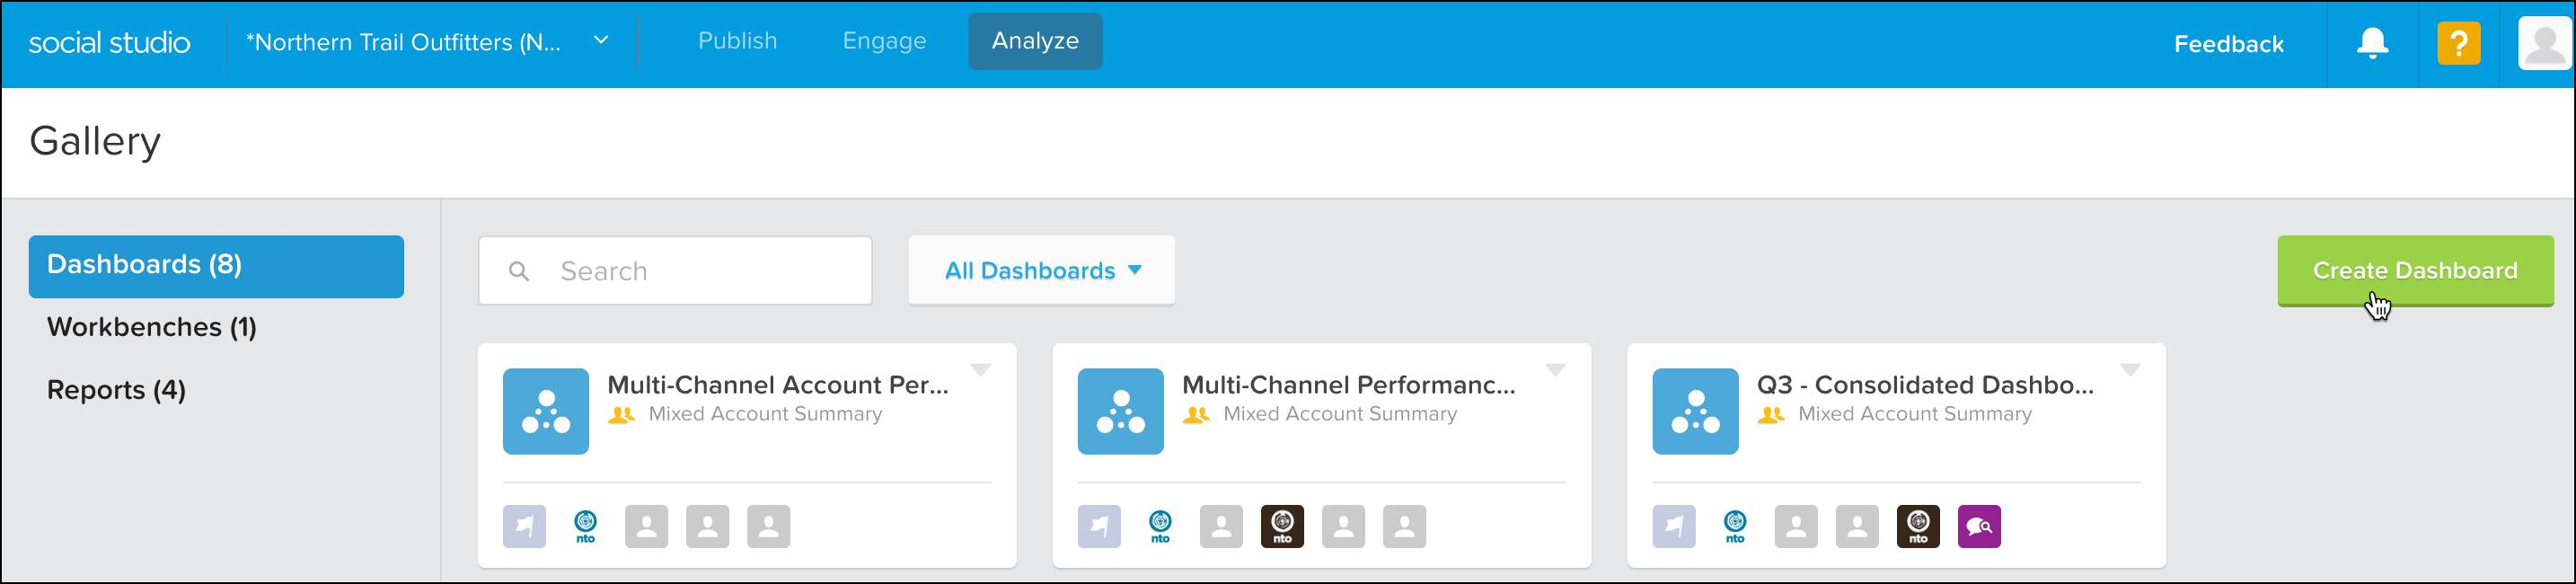 Social Studio Analyze interface with the mouse cursor on Create Dashboard button.